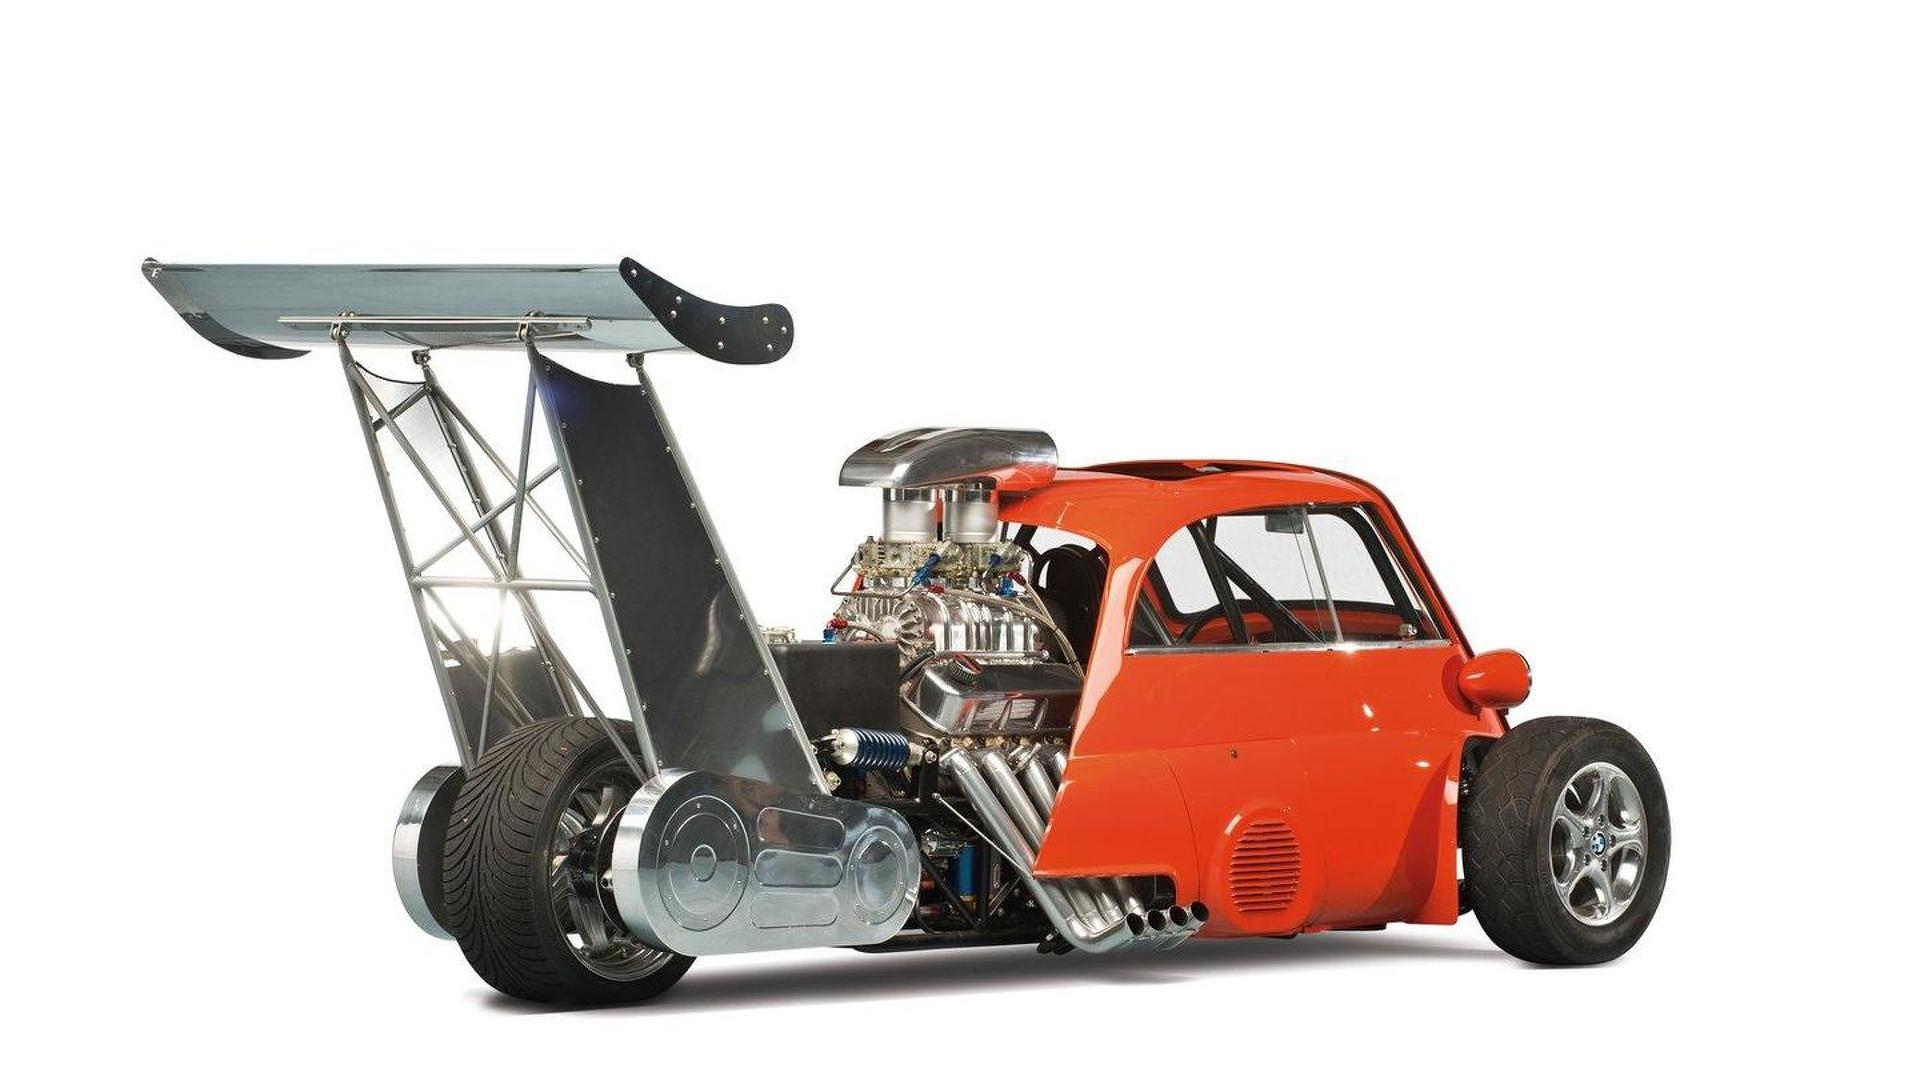 SPECIAL: 1959 BMW Isetta Whatta Drag with 730 hp Chevrolet